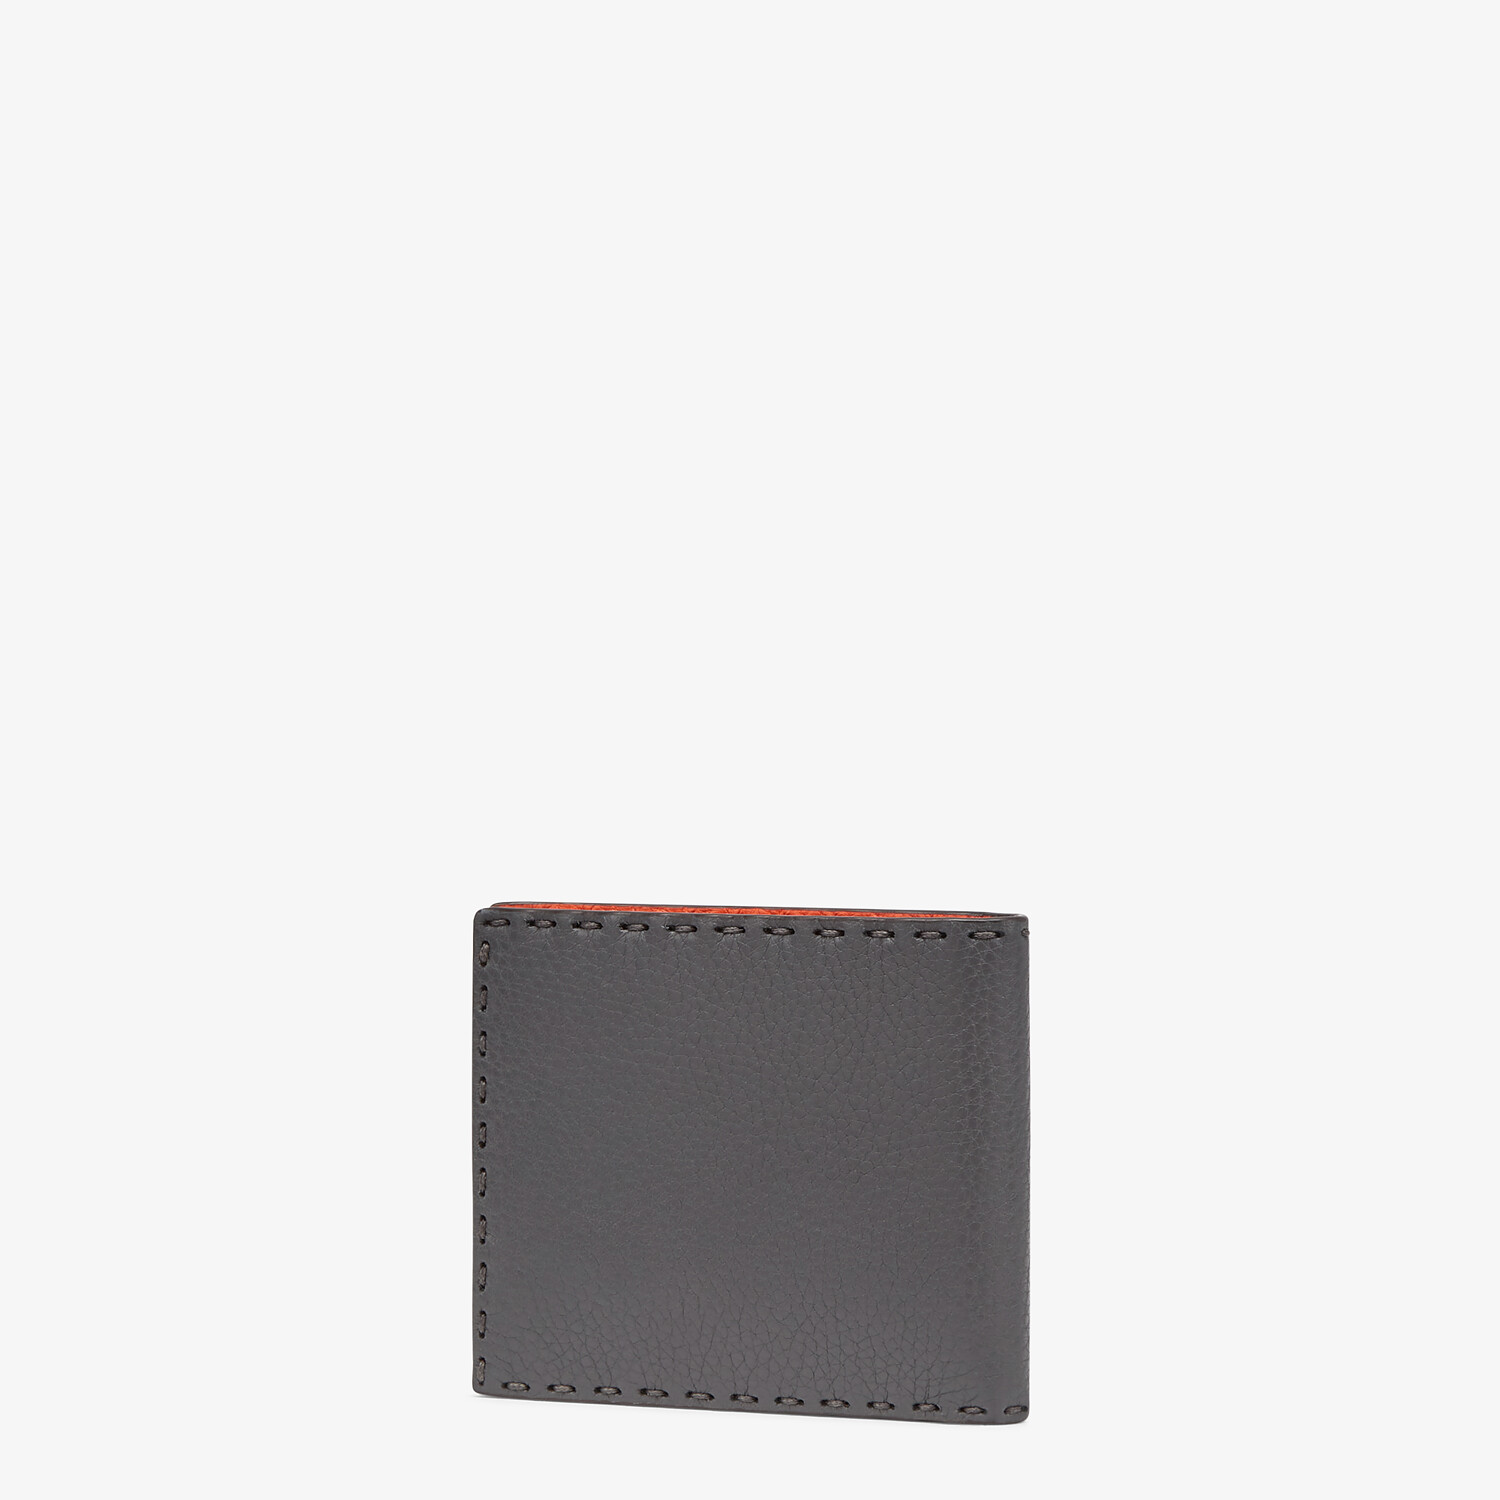 FENDI WALLET - Bi-fold wallet in gray leather - view 2 detail